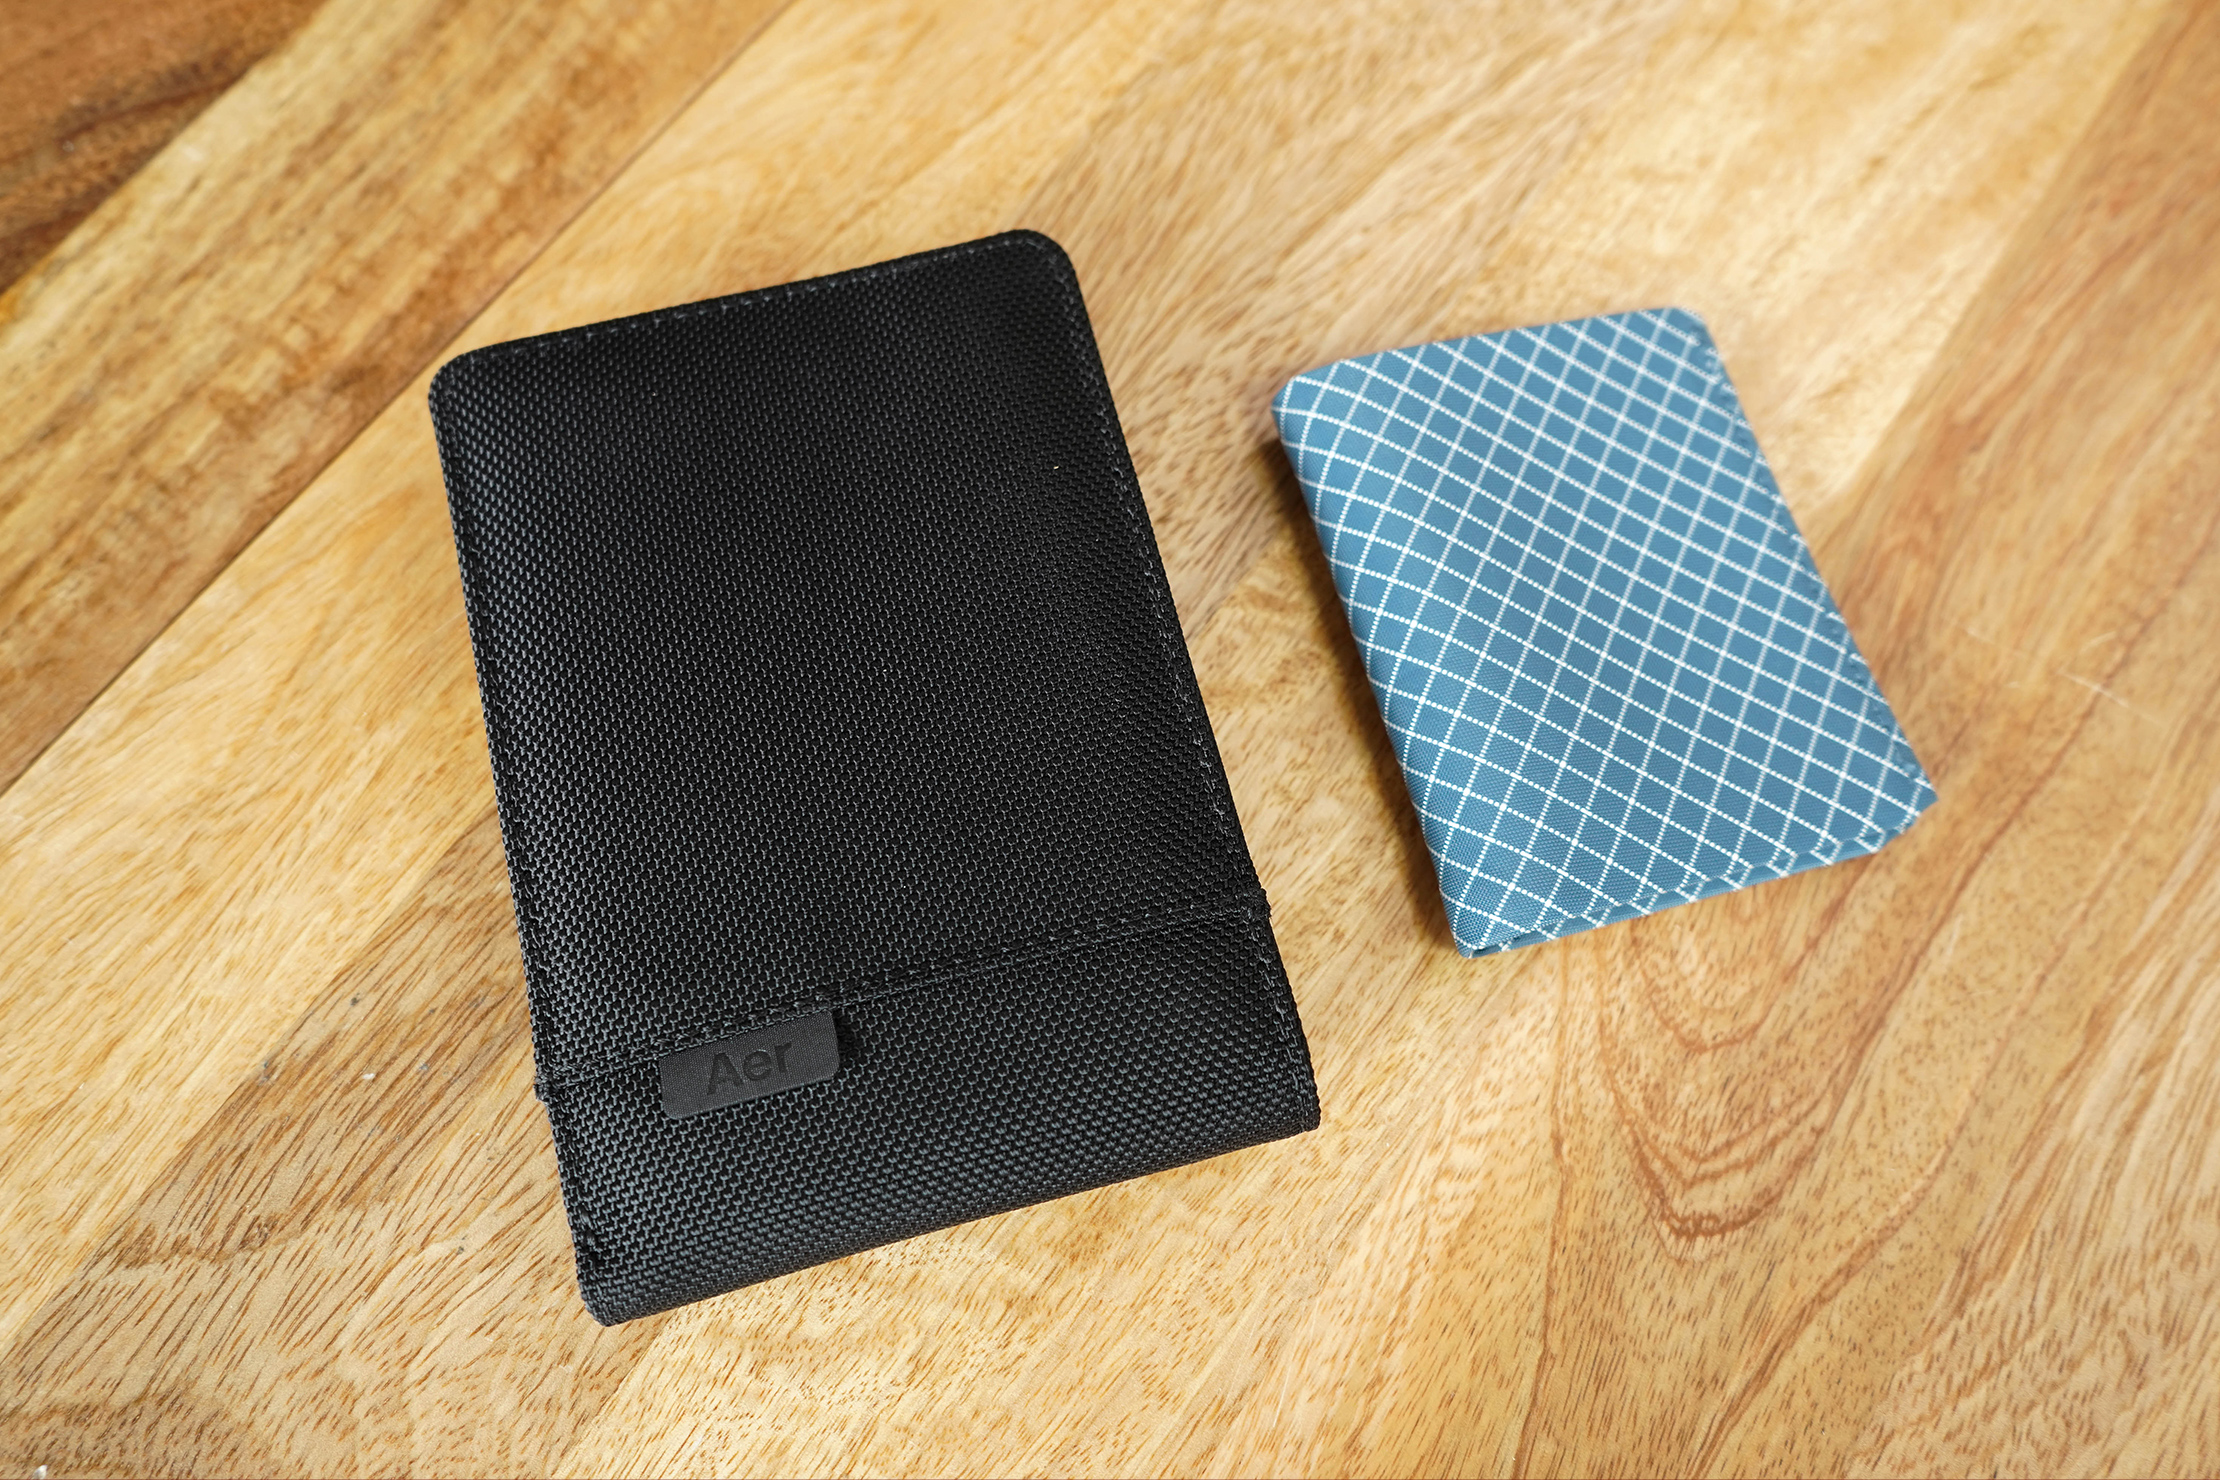 Aer Travel Wallet Size Comparison